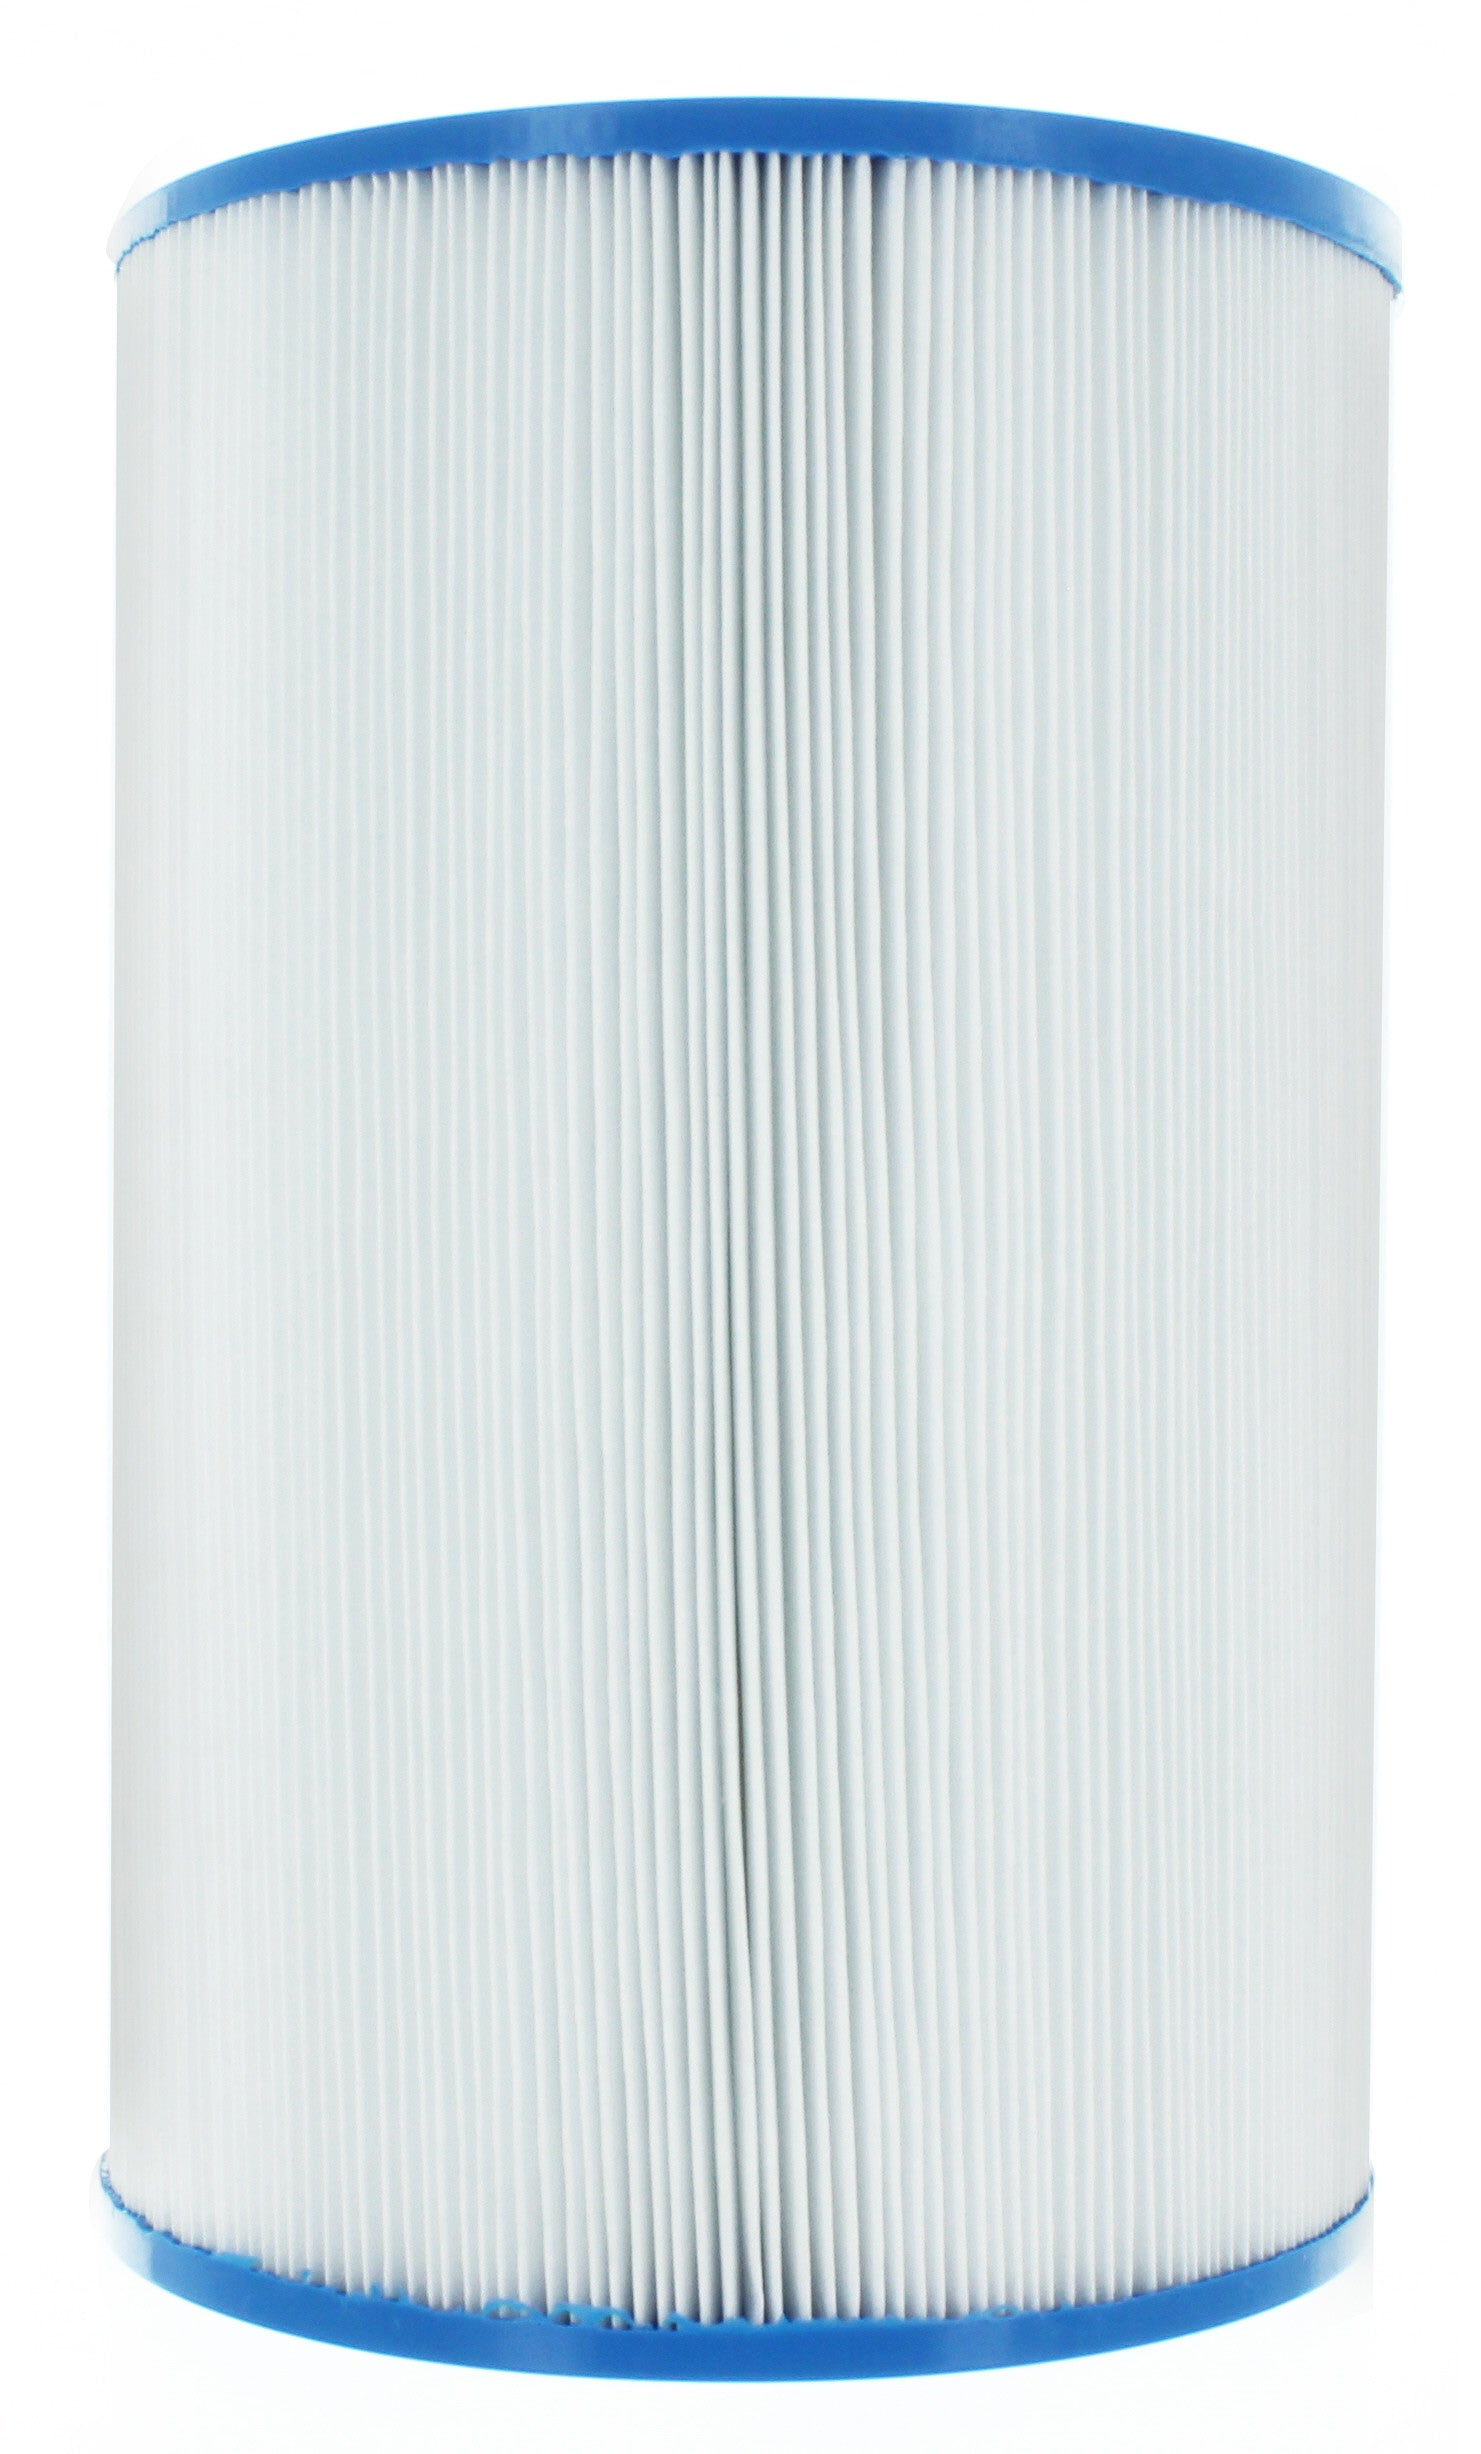 Replaces Unicel C-7350, Pleatco PCD50N • Pool & Spa Filter Cartridge-Filter Cartridge-FilterDeal.com